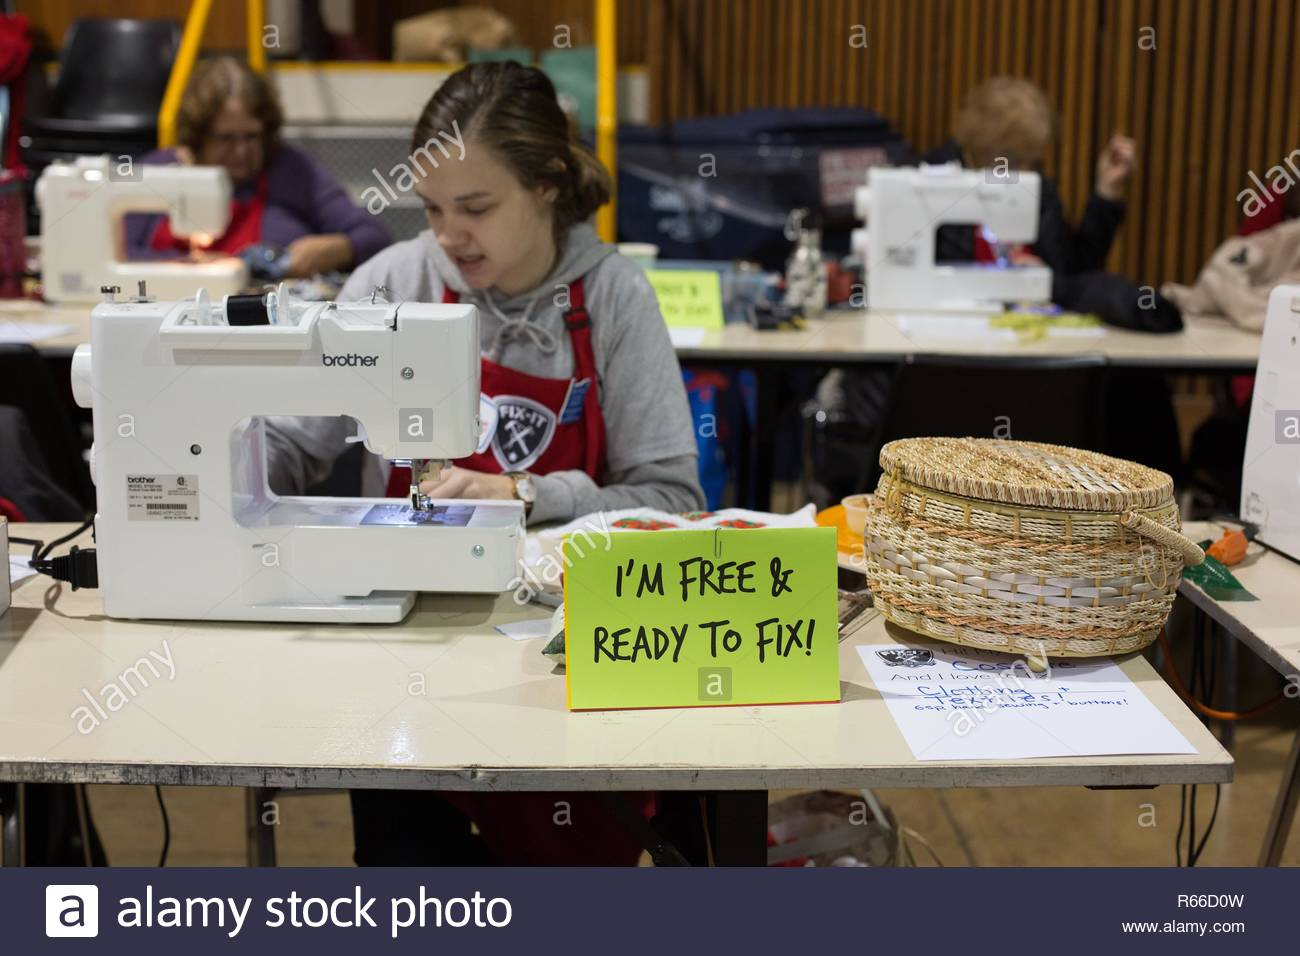 A volunteer works on an item at a sewing machine at the Fix It Fair in Eugene, Oregon, USA. - Stock Image